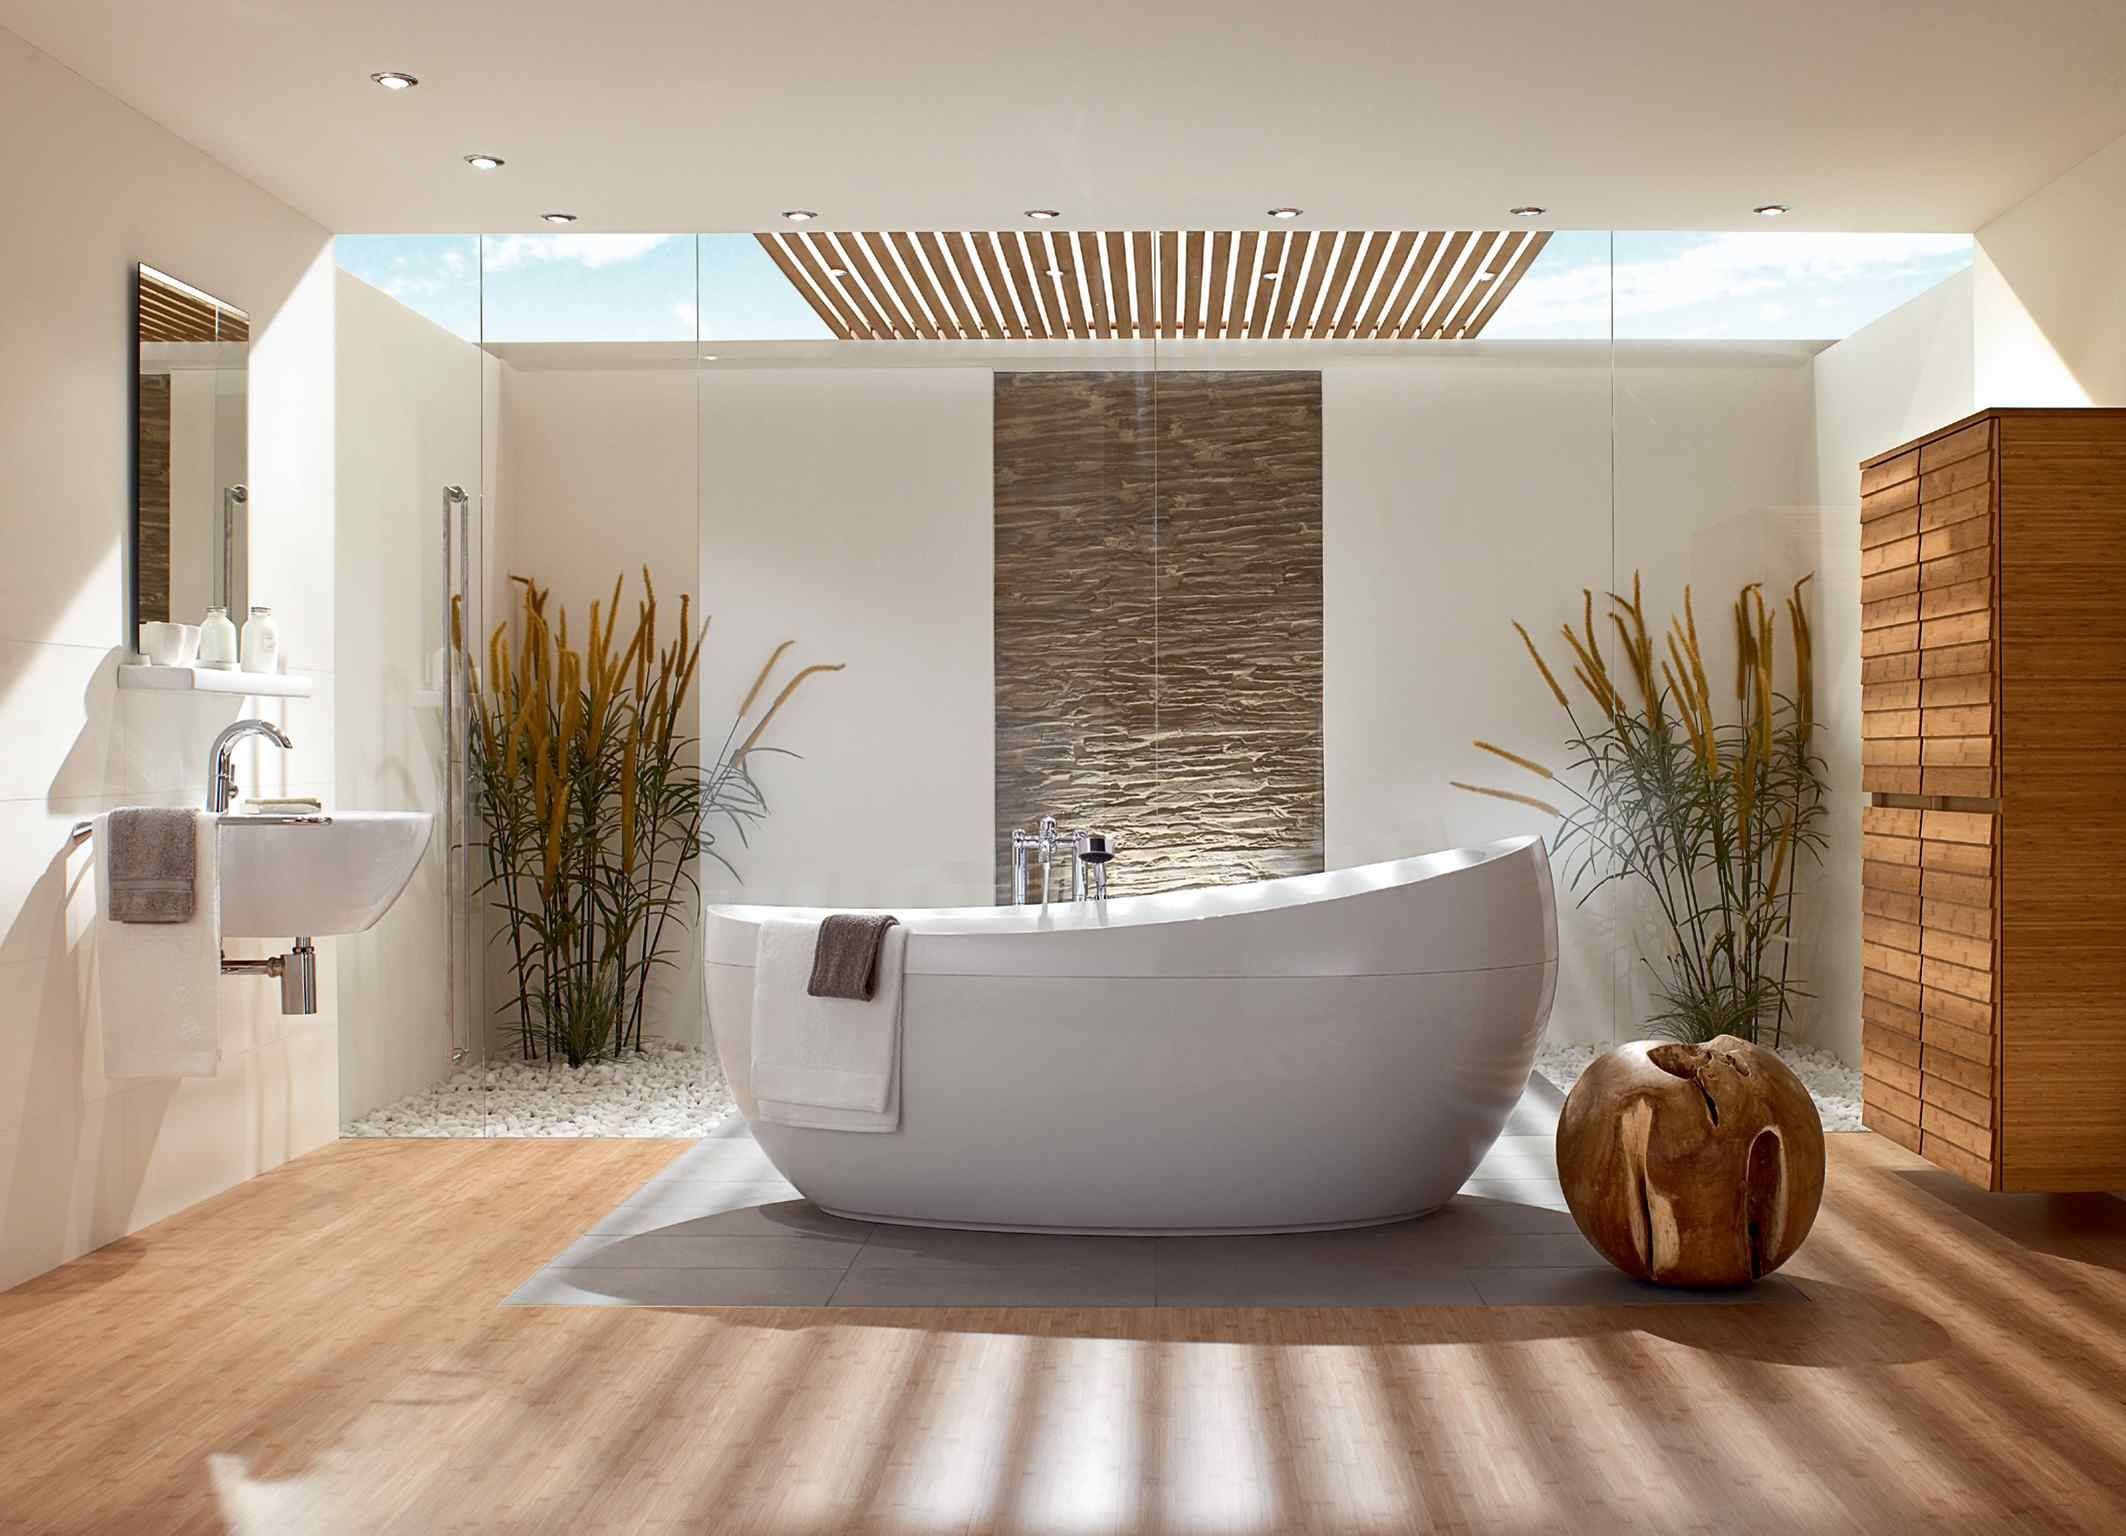 Moderne häuser innen bad  Spend a Quality Time in a Bathroom with Natural Bathroom Design ...